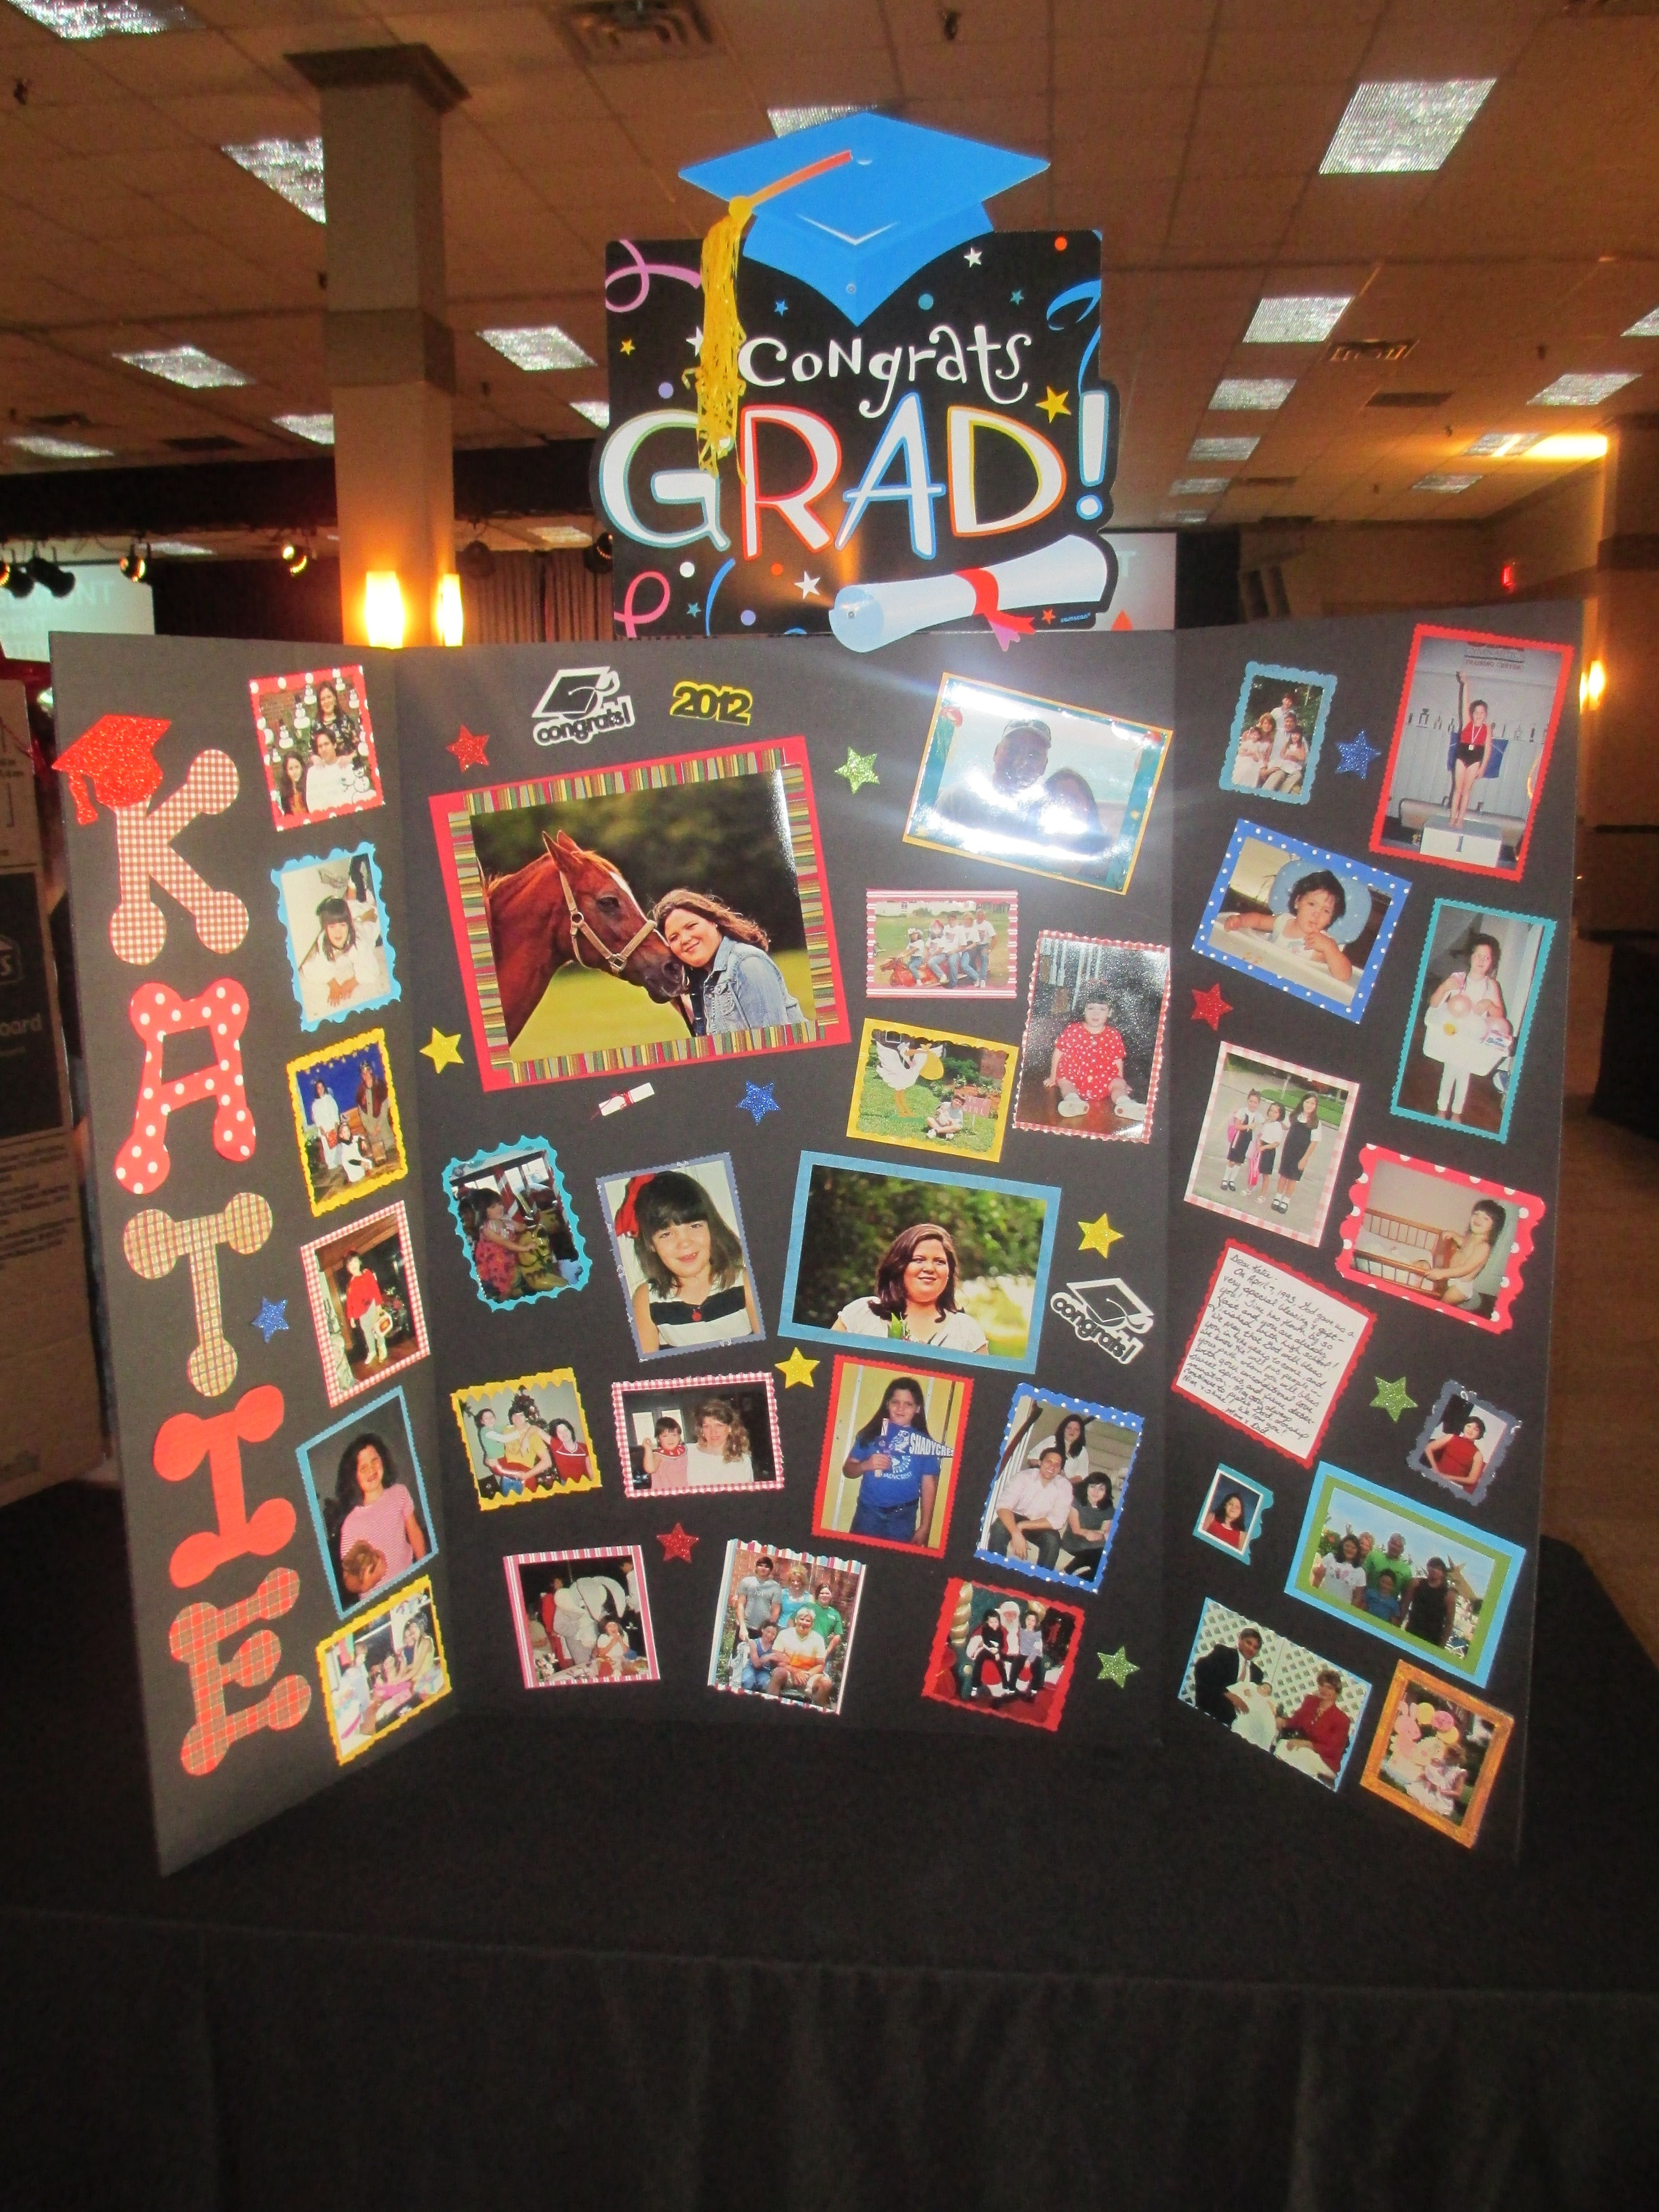 Graduation Memory Board This Is A Great Idea For An Anniversary Or